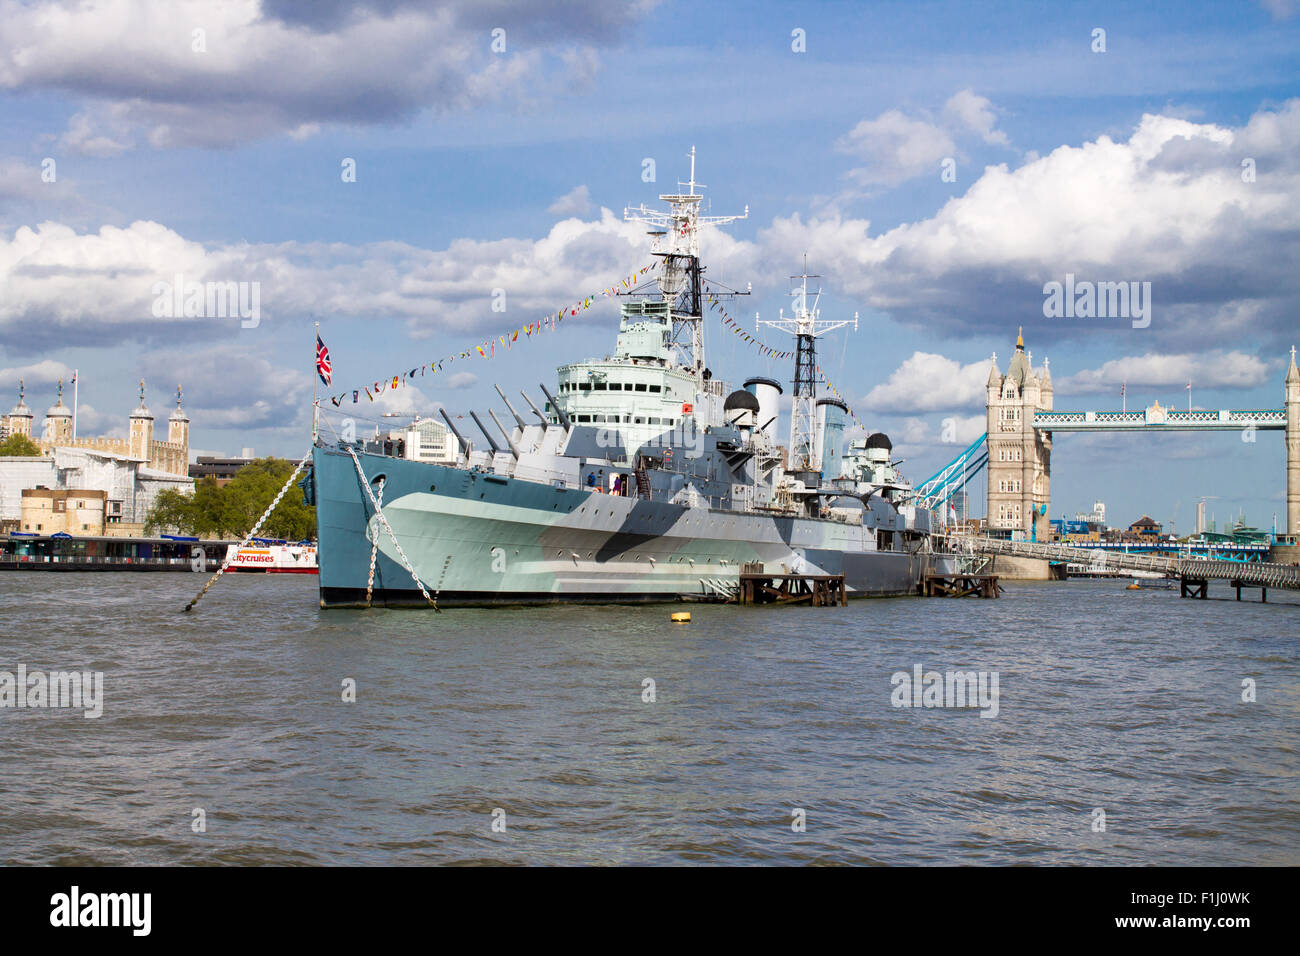 HMS Belfast, famous warship on River Thames. Tower Bridge on the background. - Stock Image